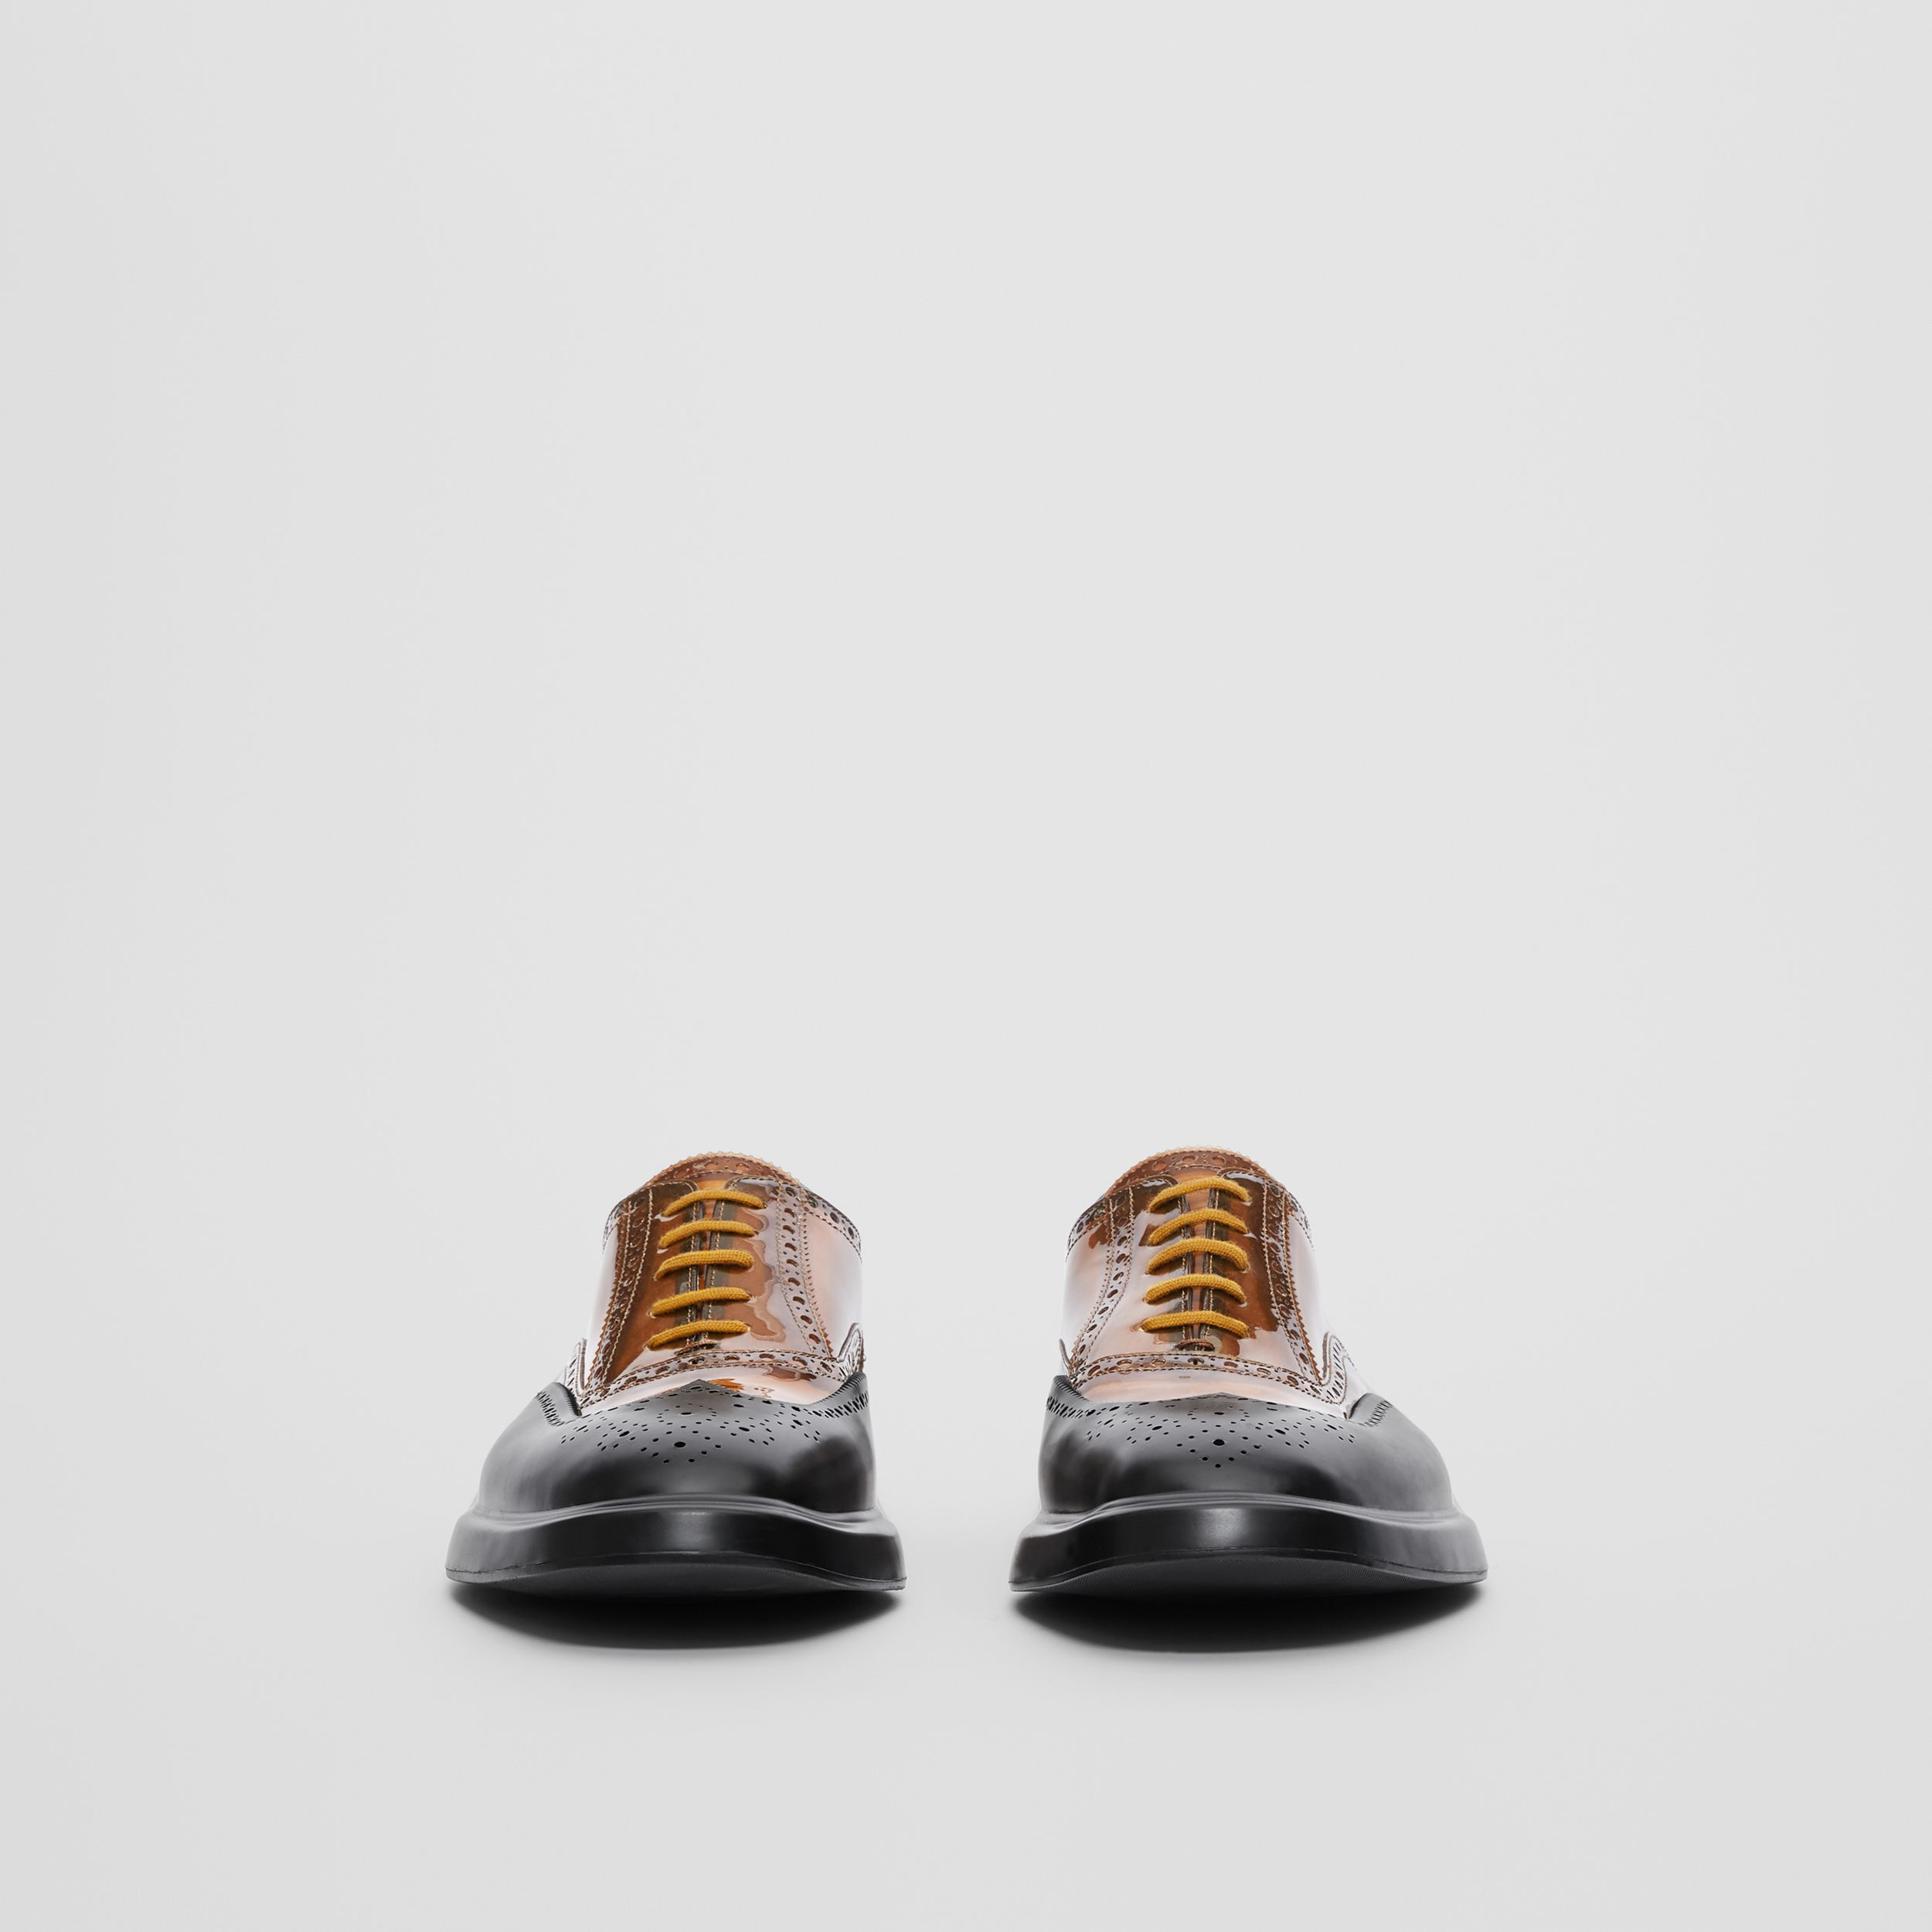 Toe Cap Detail Vinyl and Leather Oxford Brogues in Brown/black - Men | Burberry Australia - 4